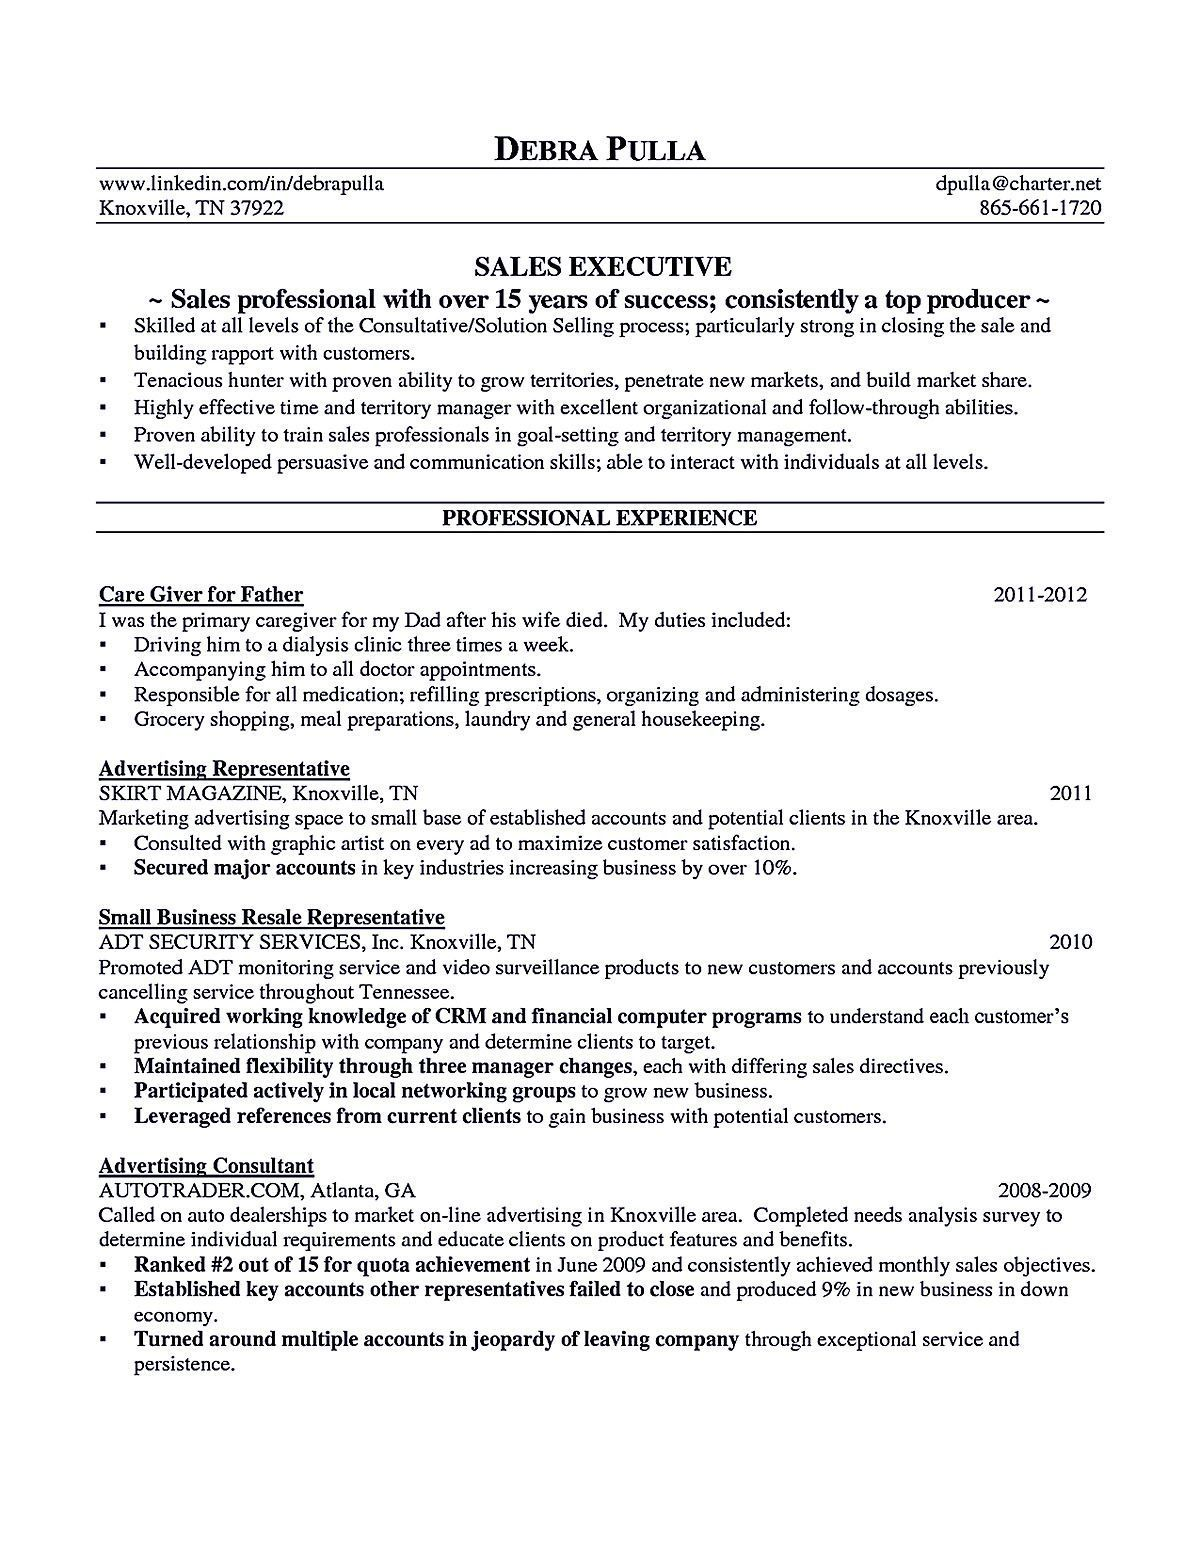 Advertising Account Executive Resume Amusing Account Executive Resume Is Like Your Weapon To Get The Job You Want .